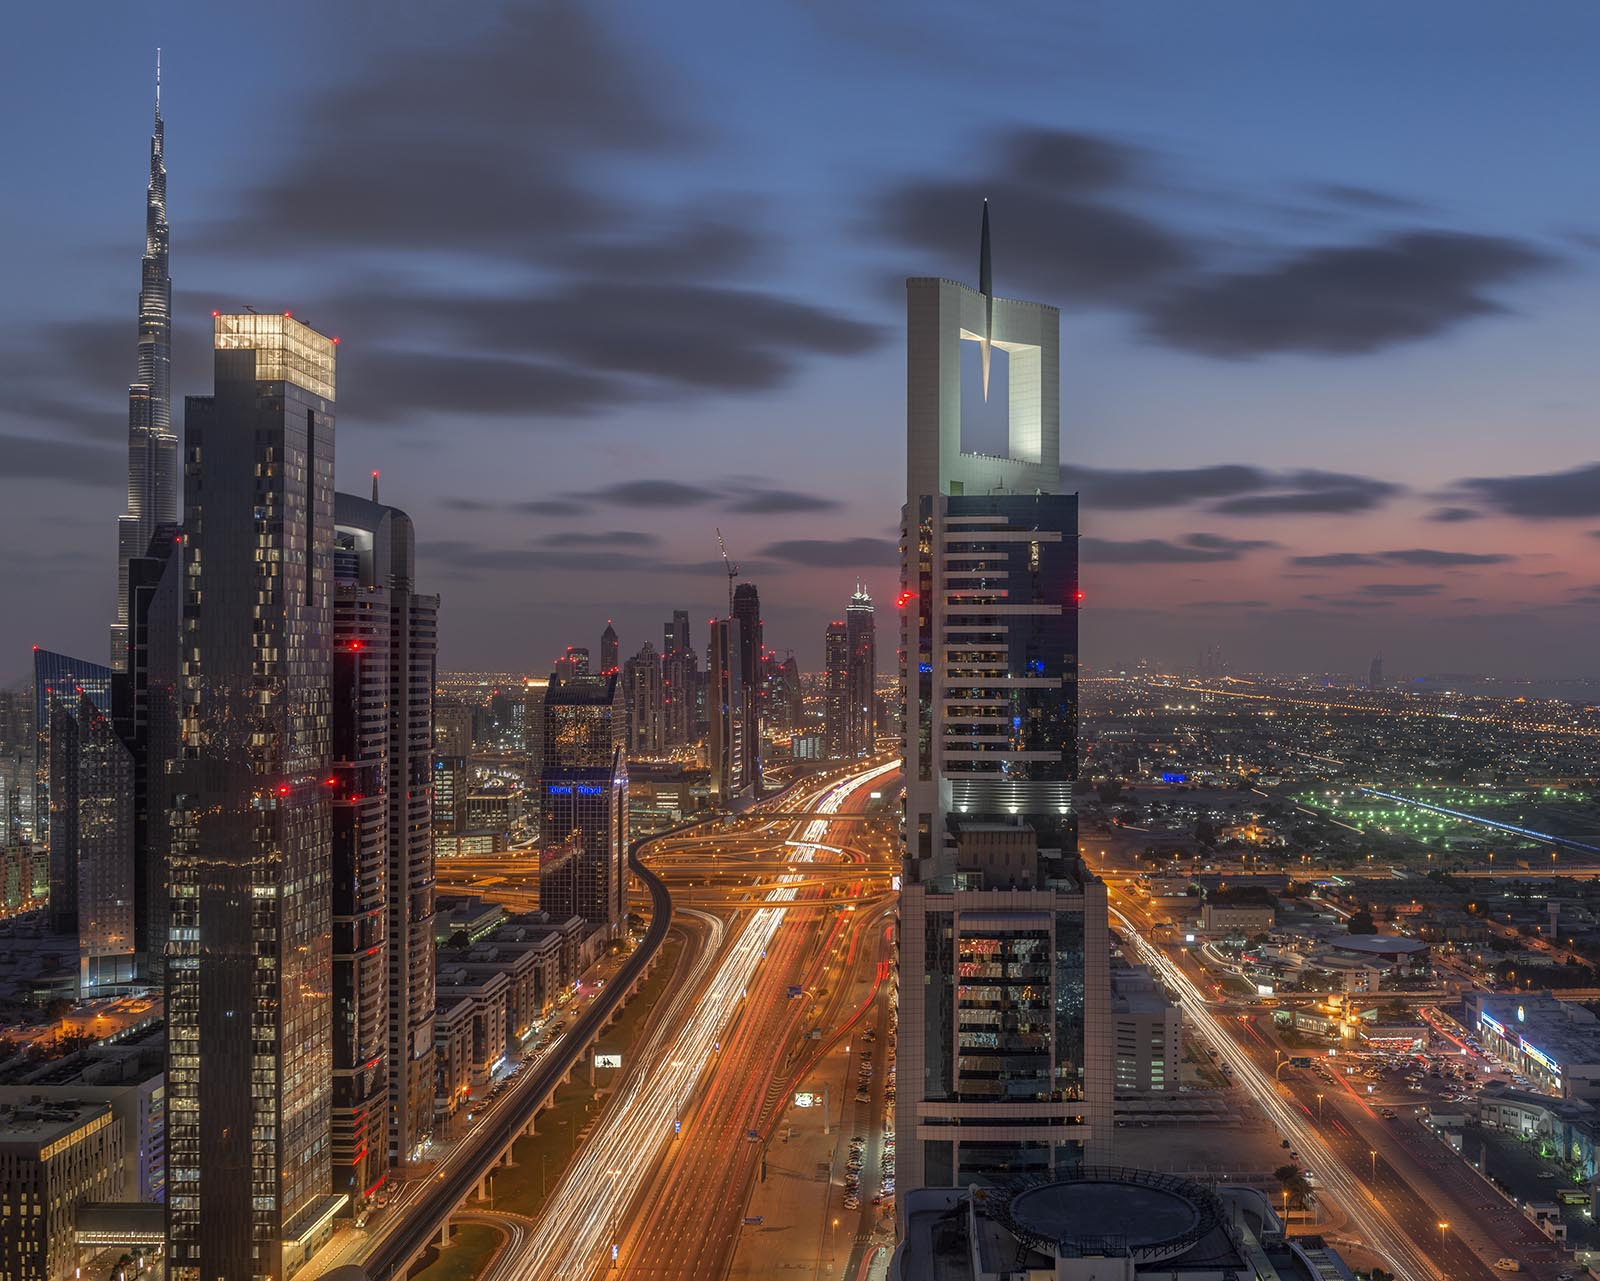 Sheikh Zayed road during rush hour from Level 42 bar